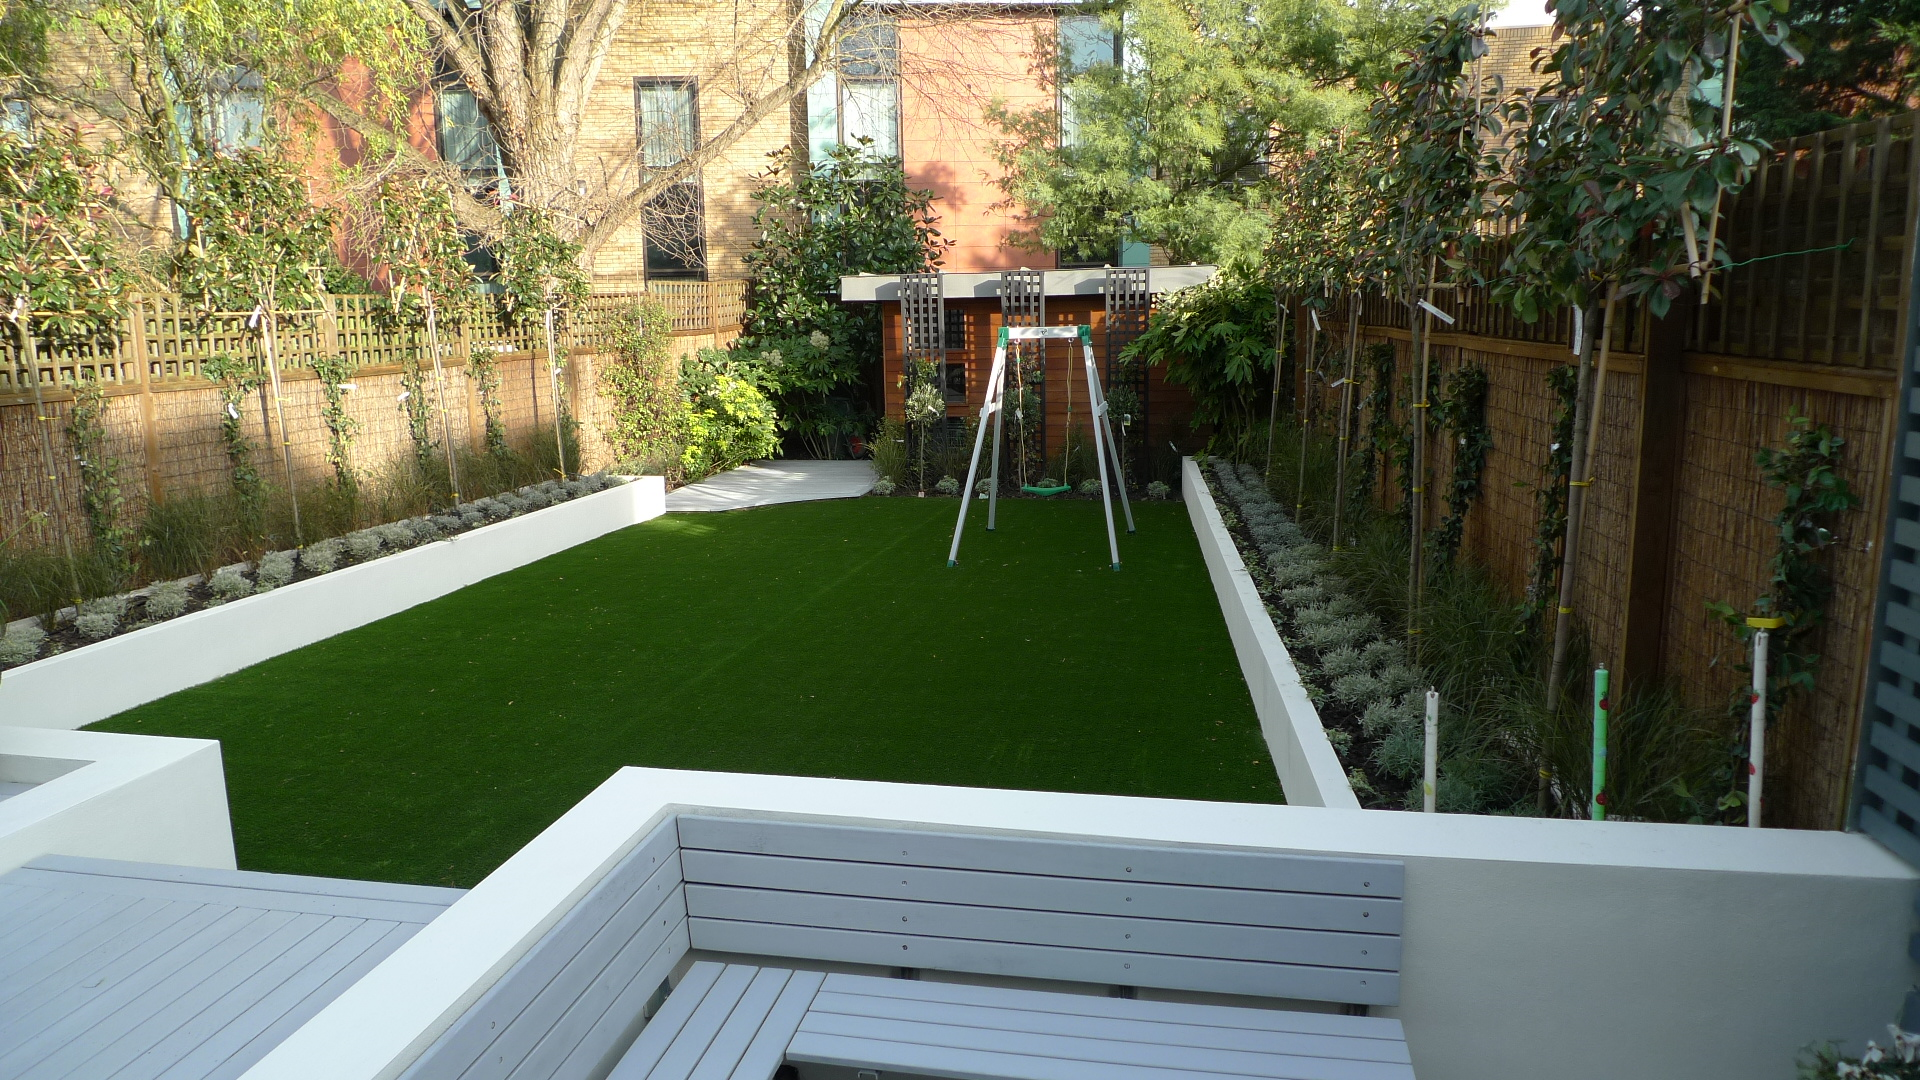 Modern garden design ideas london london garden design for Home garden design uk